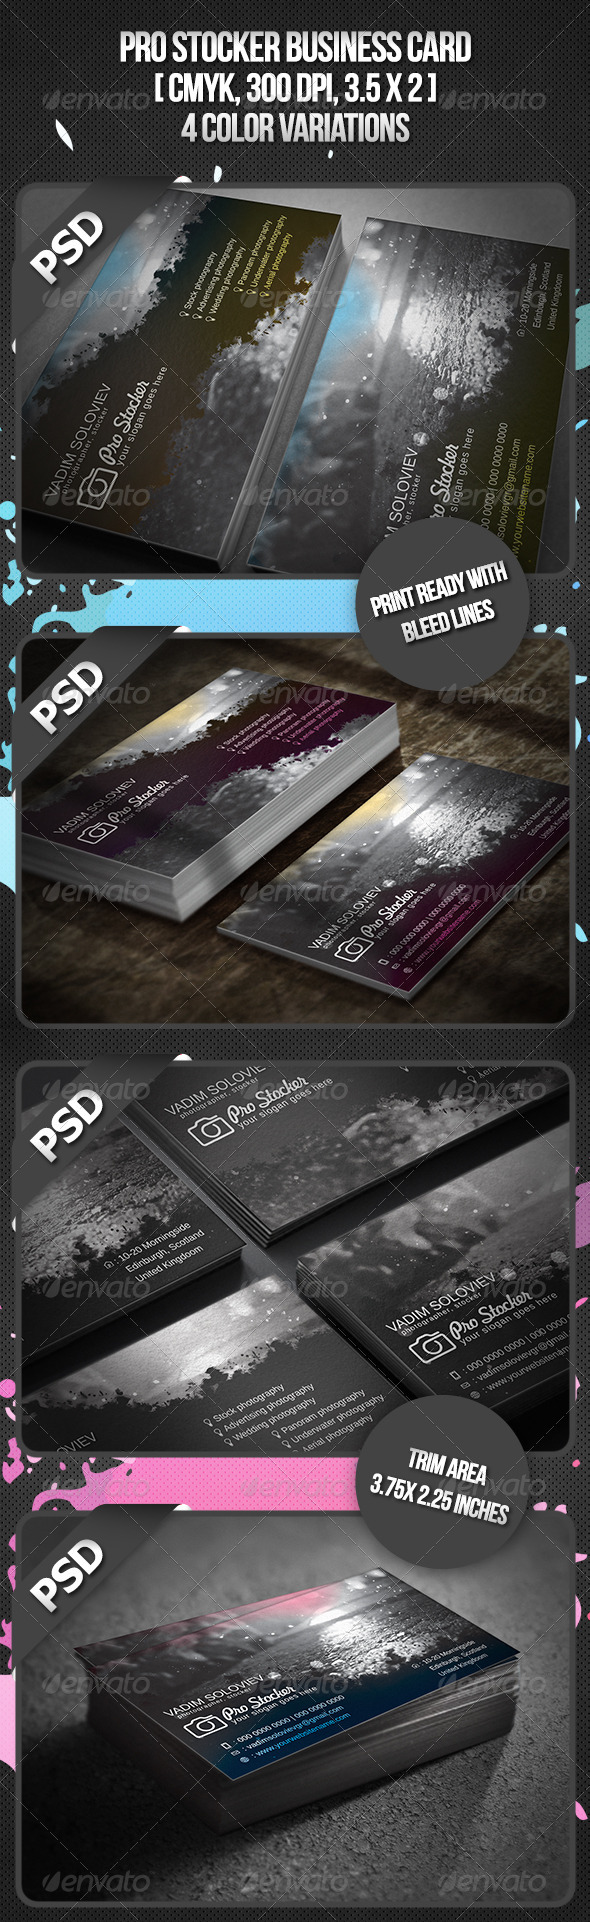 Pro Stocker Business Card - Business Cards Print Templates